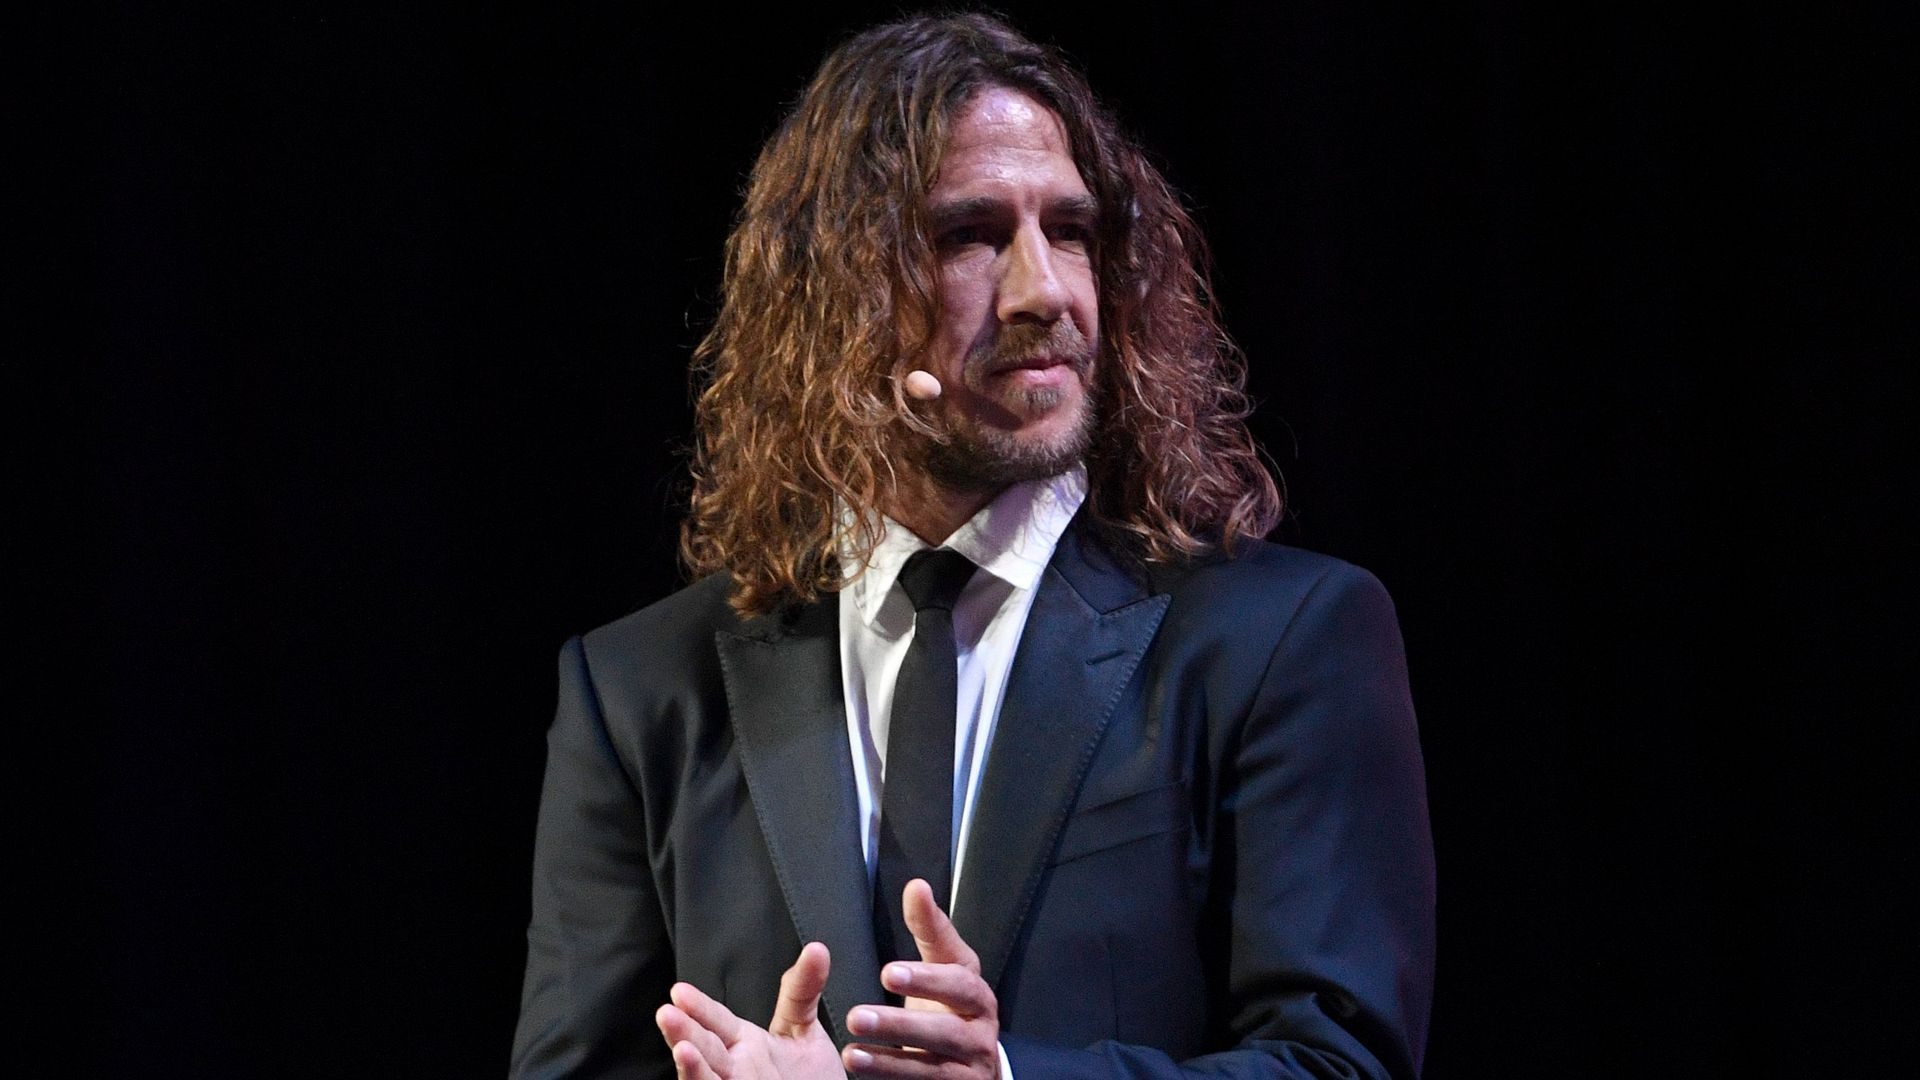 Carles Puyol FIFA World Cup 2018 draw